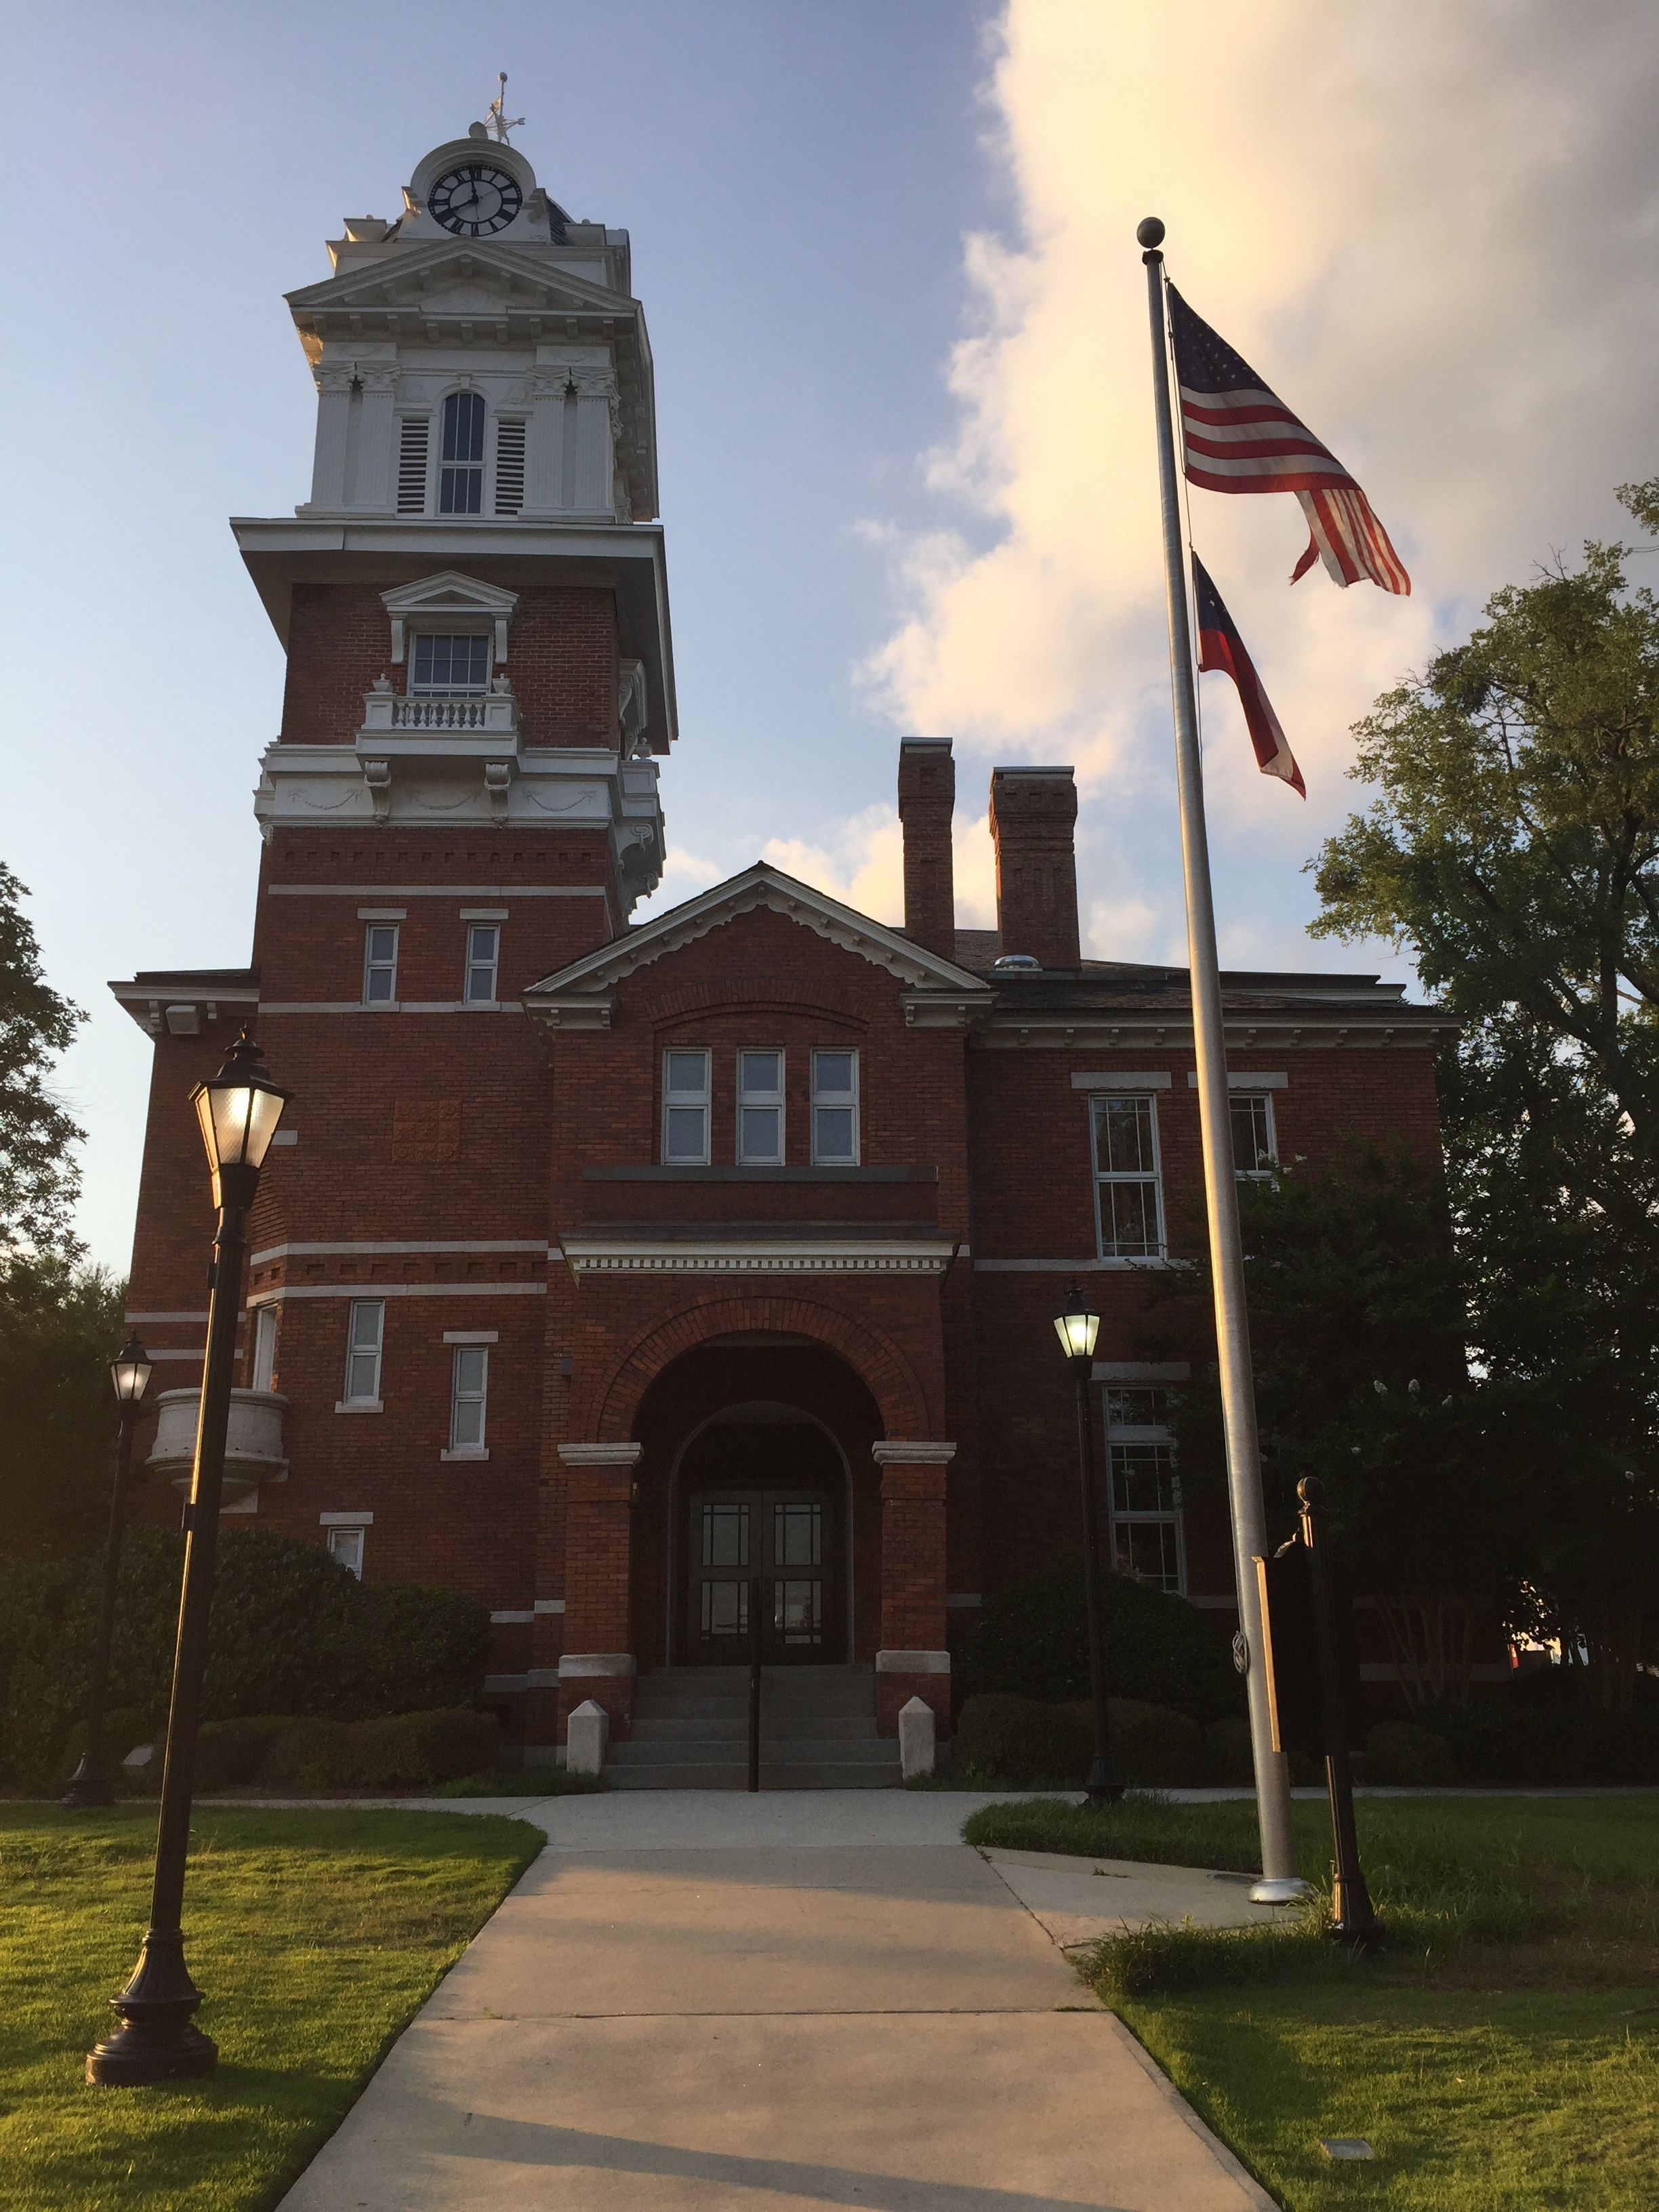 Historic County Courthouse. Lawrenceville